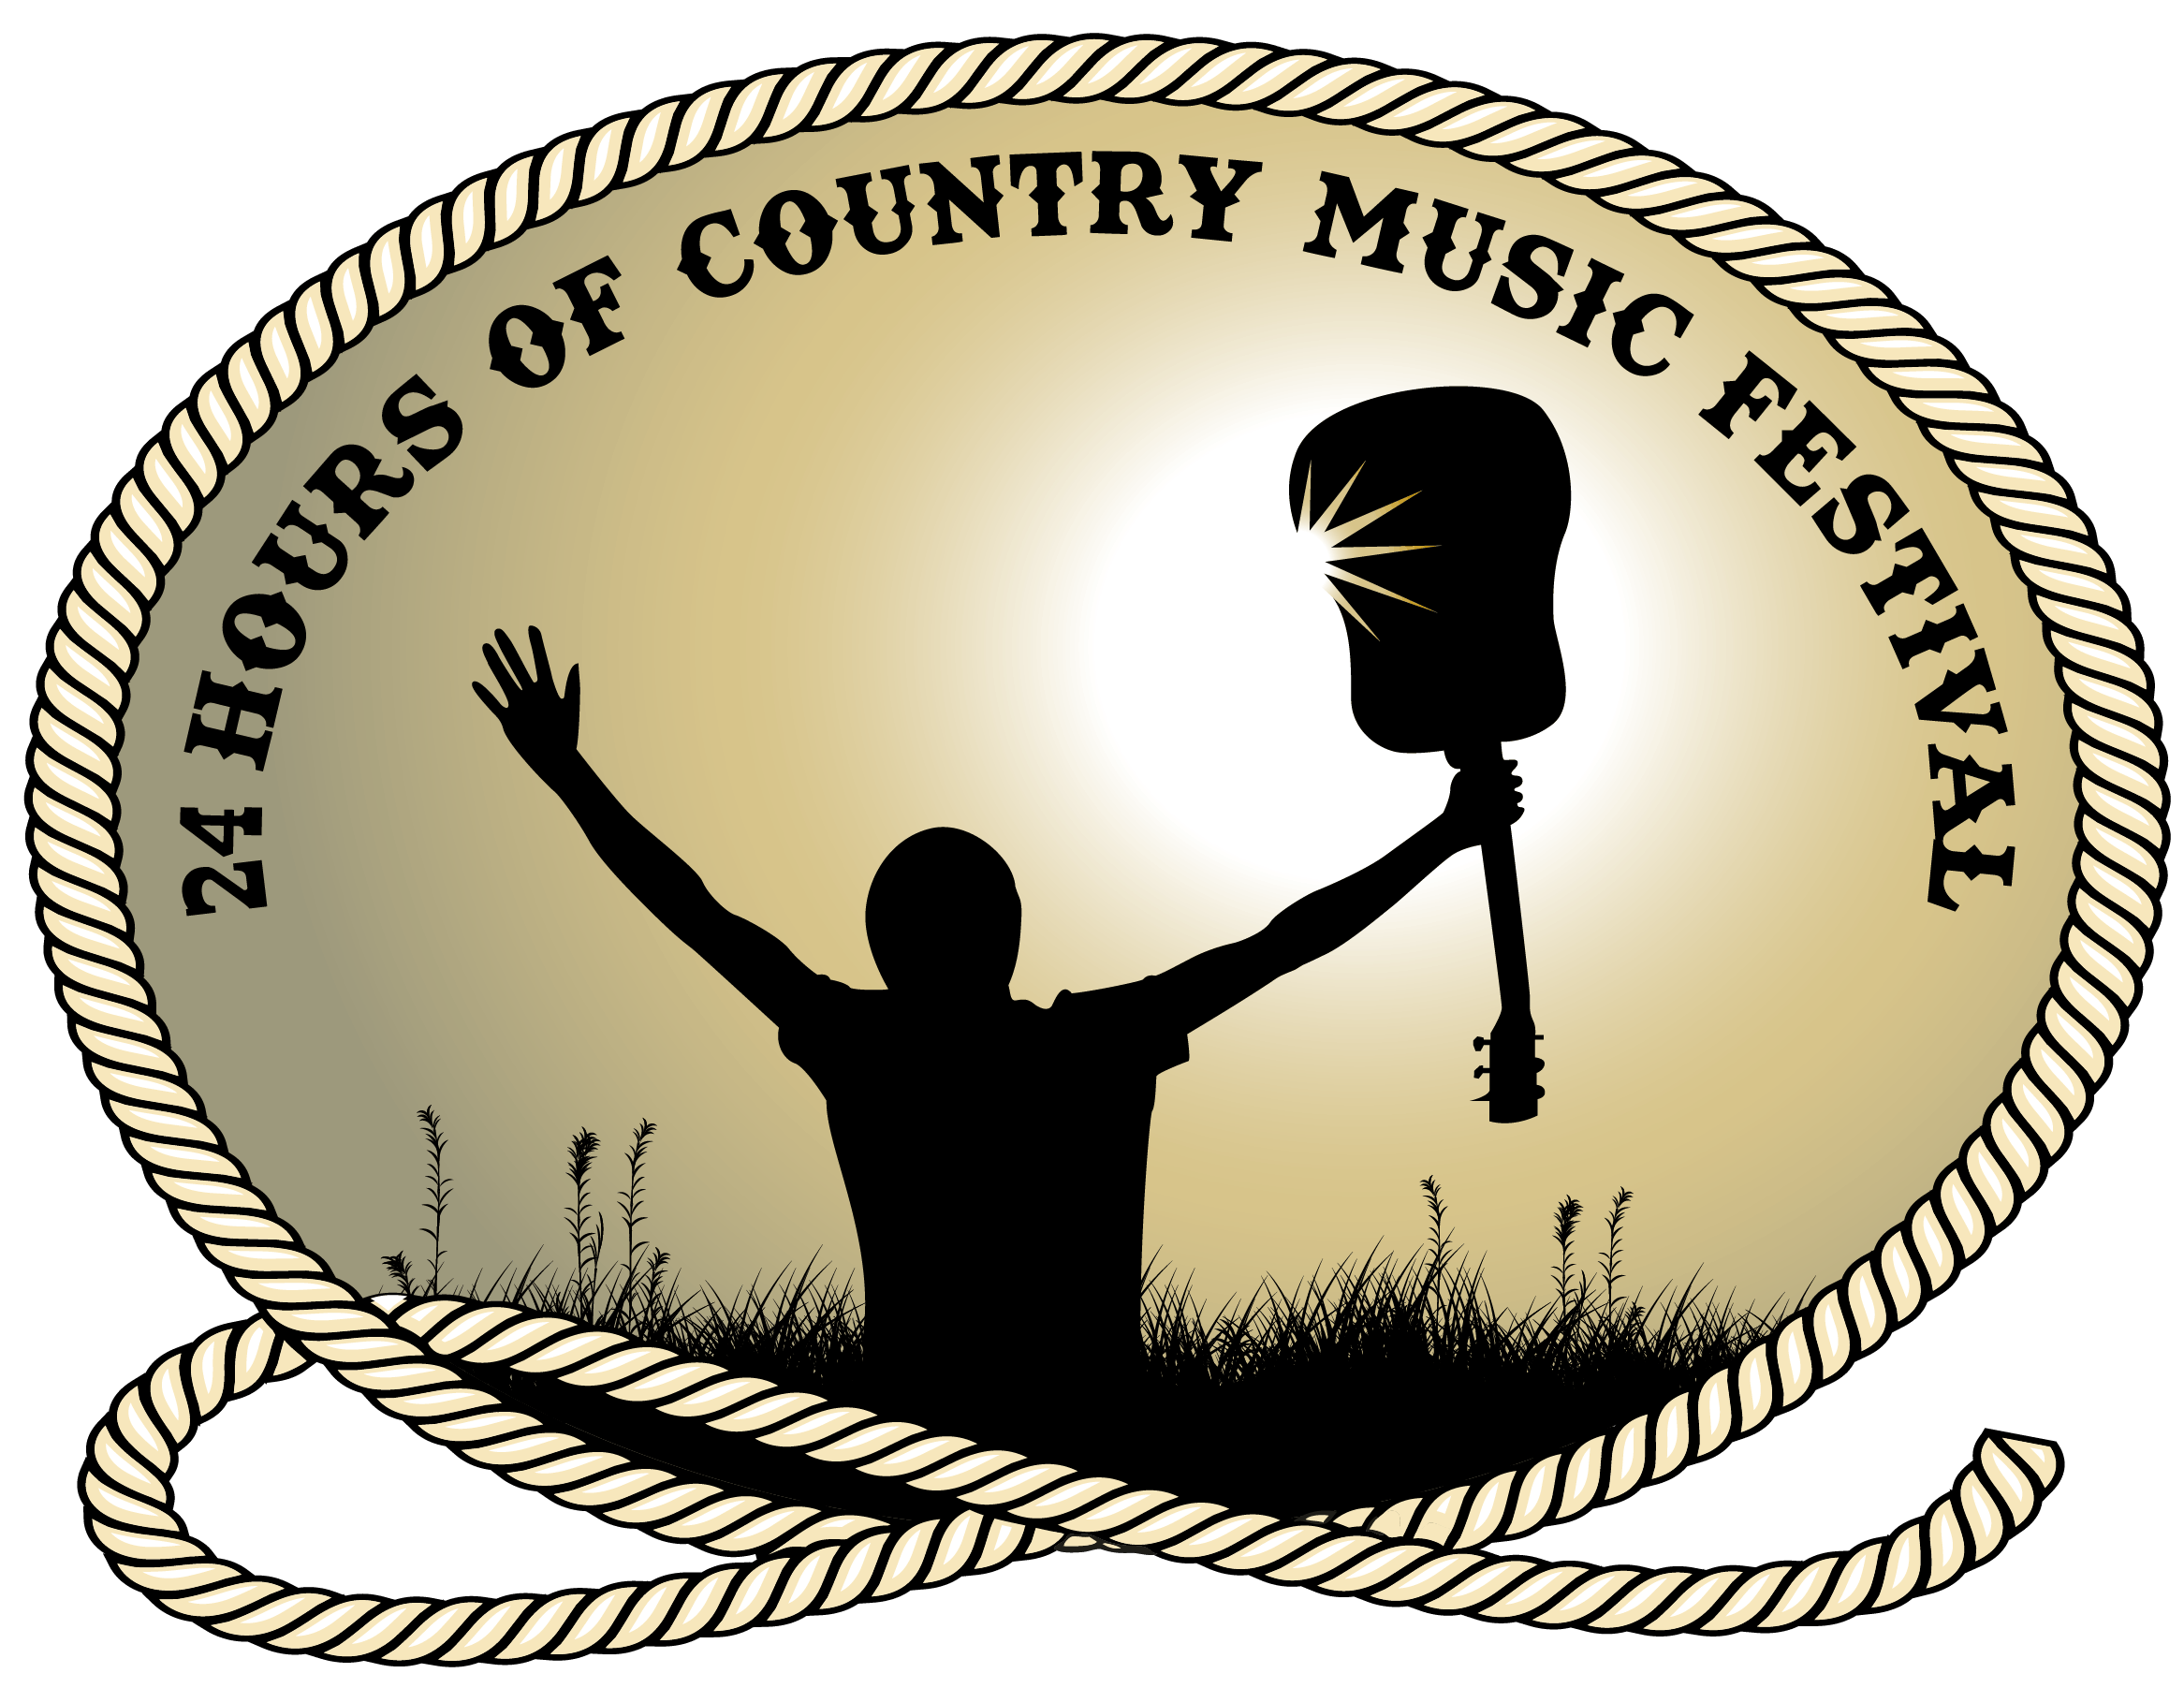 24 Hours of Country Music Festival (Las Vegas